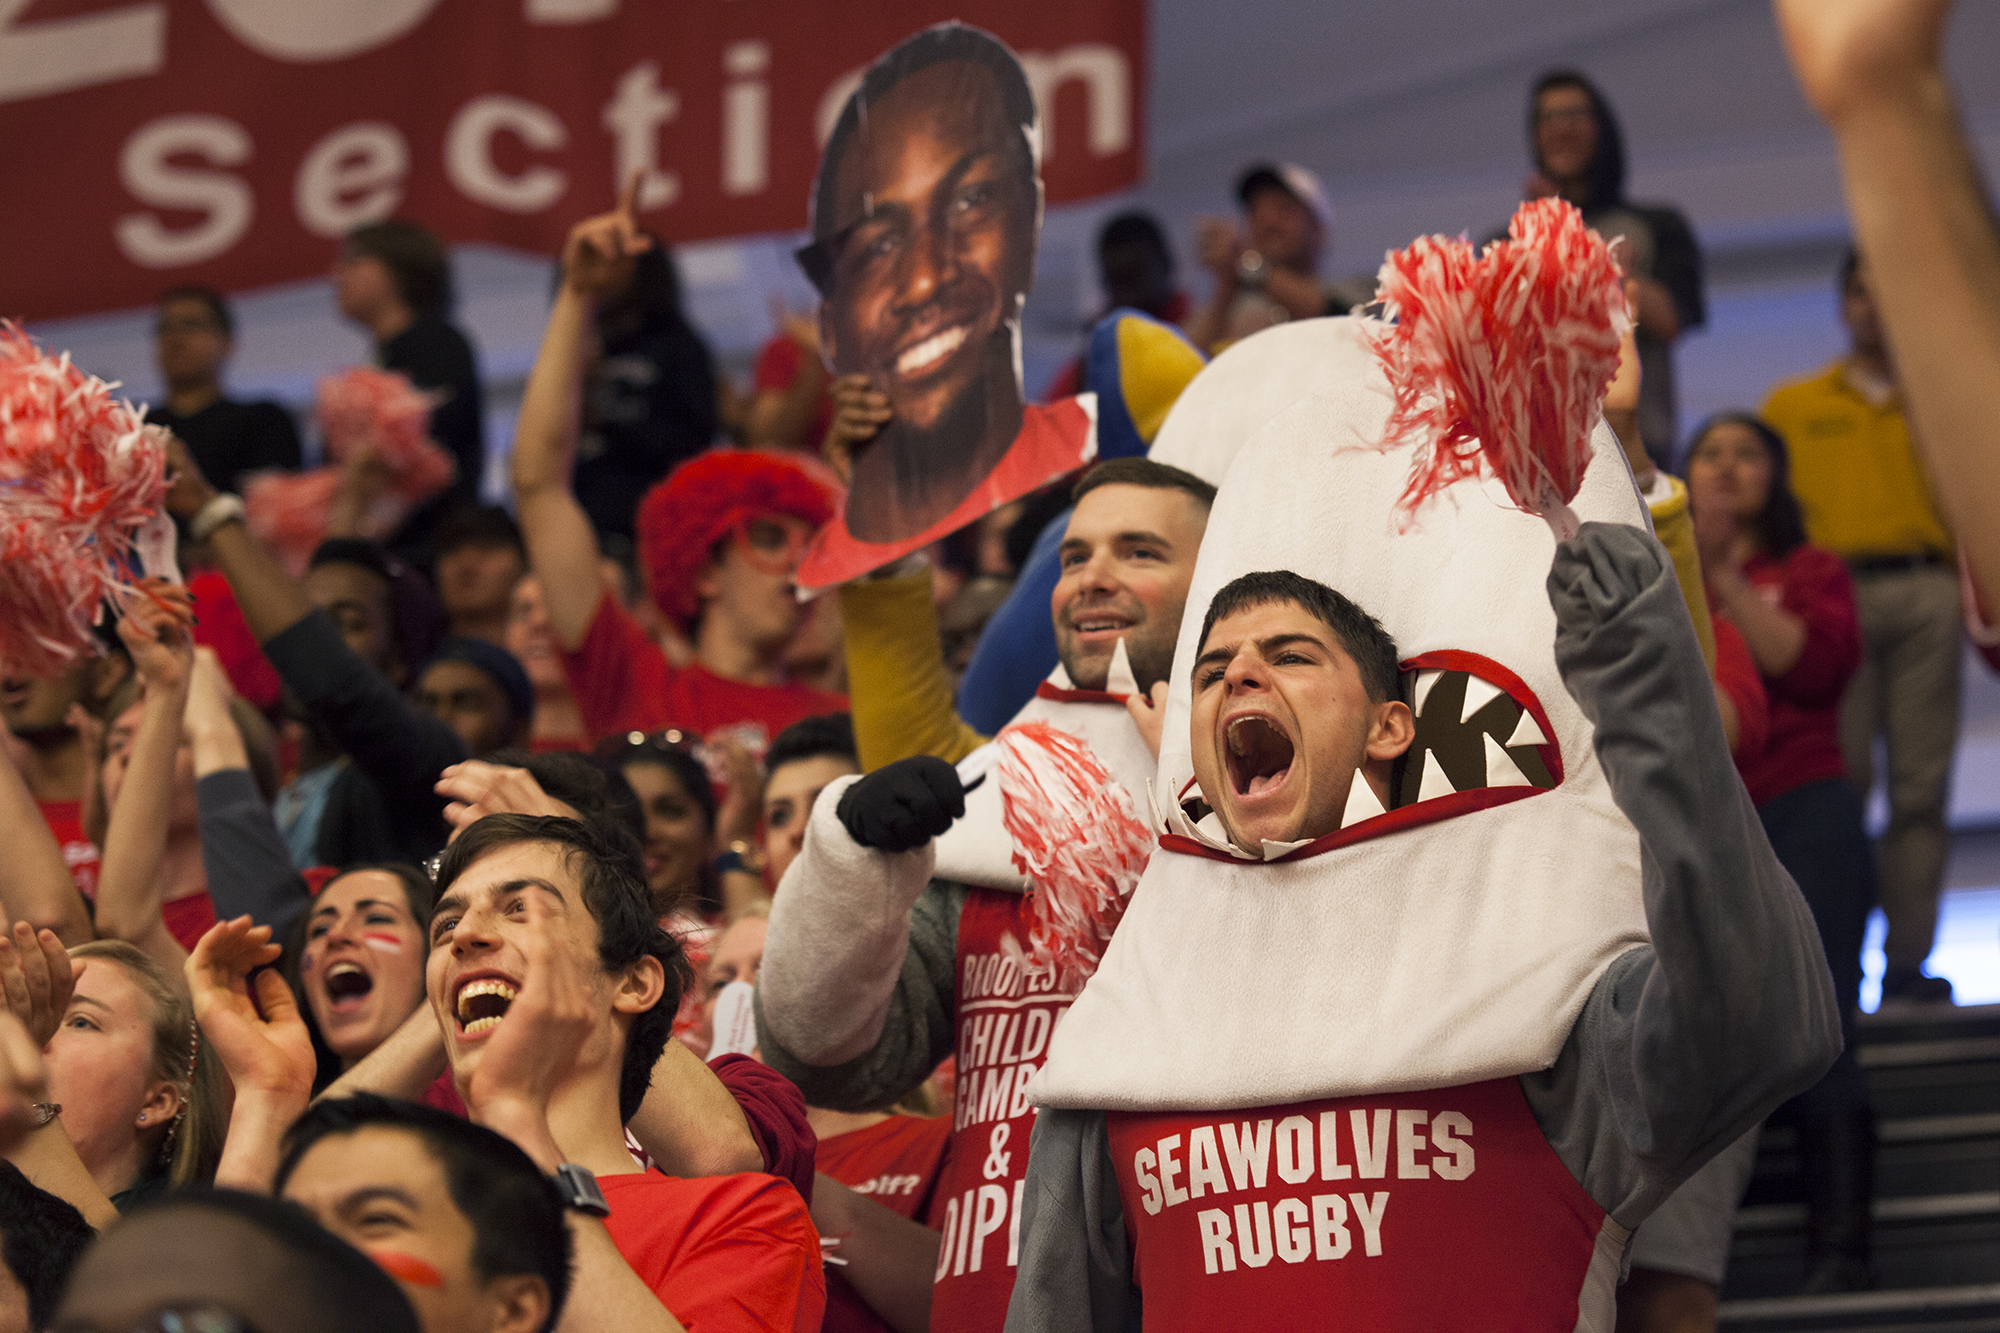 Stony Brook students, dressed up in costumes and holding signs, cheer on their team as the American East championship game begins. CHRISTOPHER CAMERON/THE STATESMAN